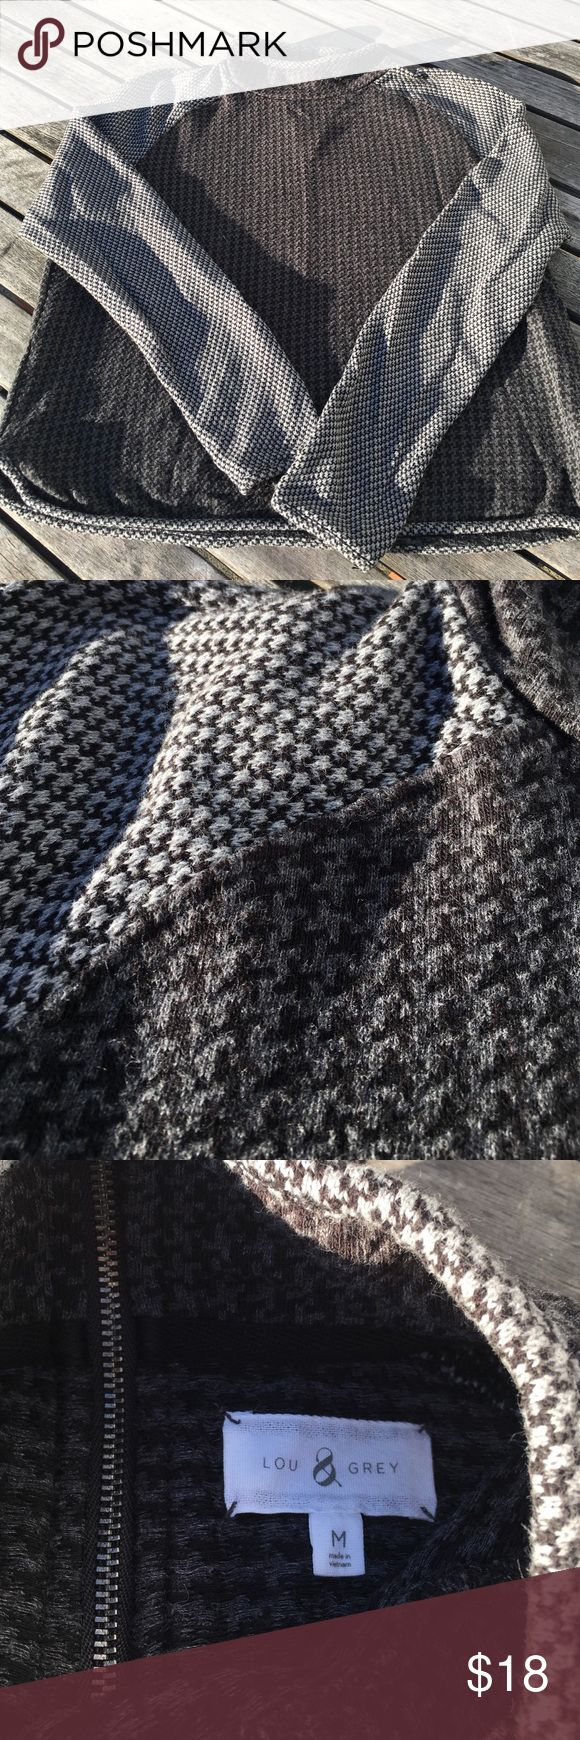 Mock Neck Houndstooth Pullover Soft and neutral in a classic pattern. Super comfy and easy to wear knit top. Zipper at back of neck. Bey good used condition - no rips, stains or issues. Lou & Grey Sweaters Cowl & Turtlenecks